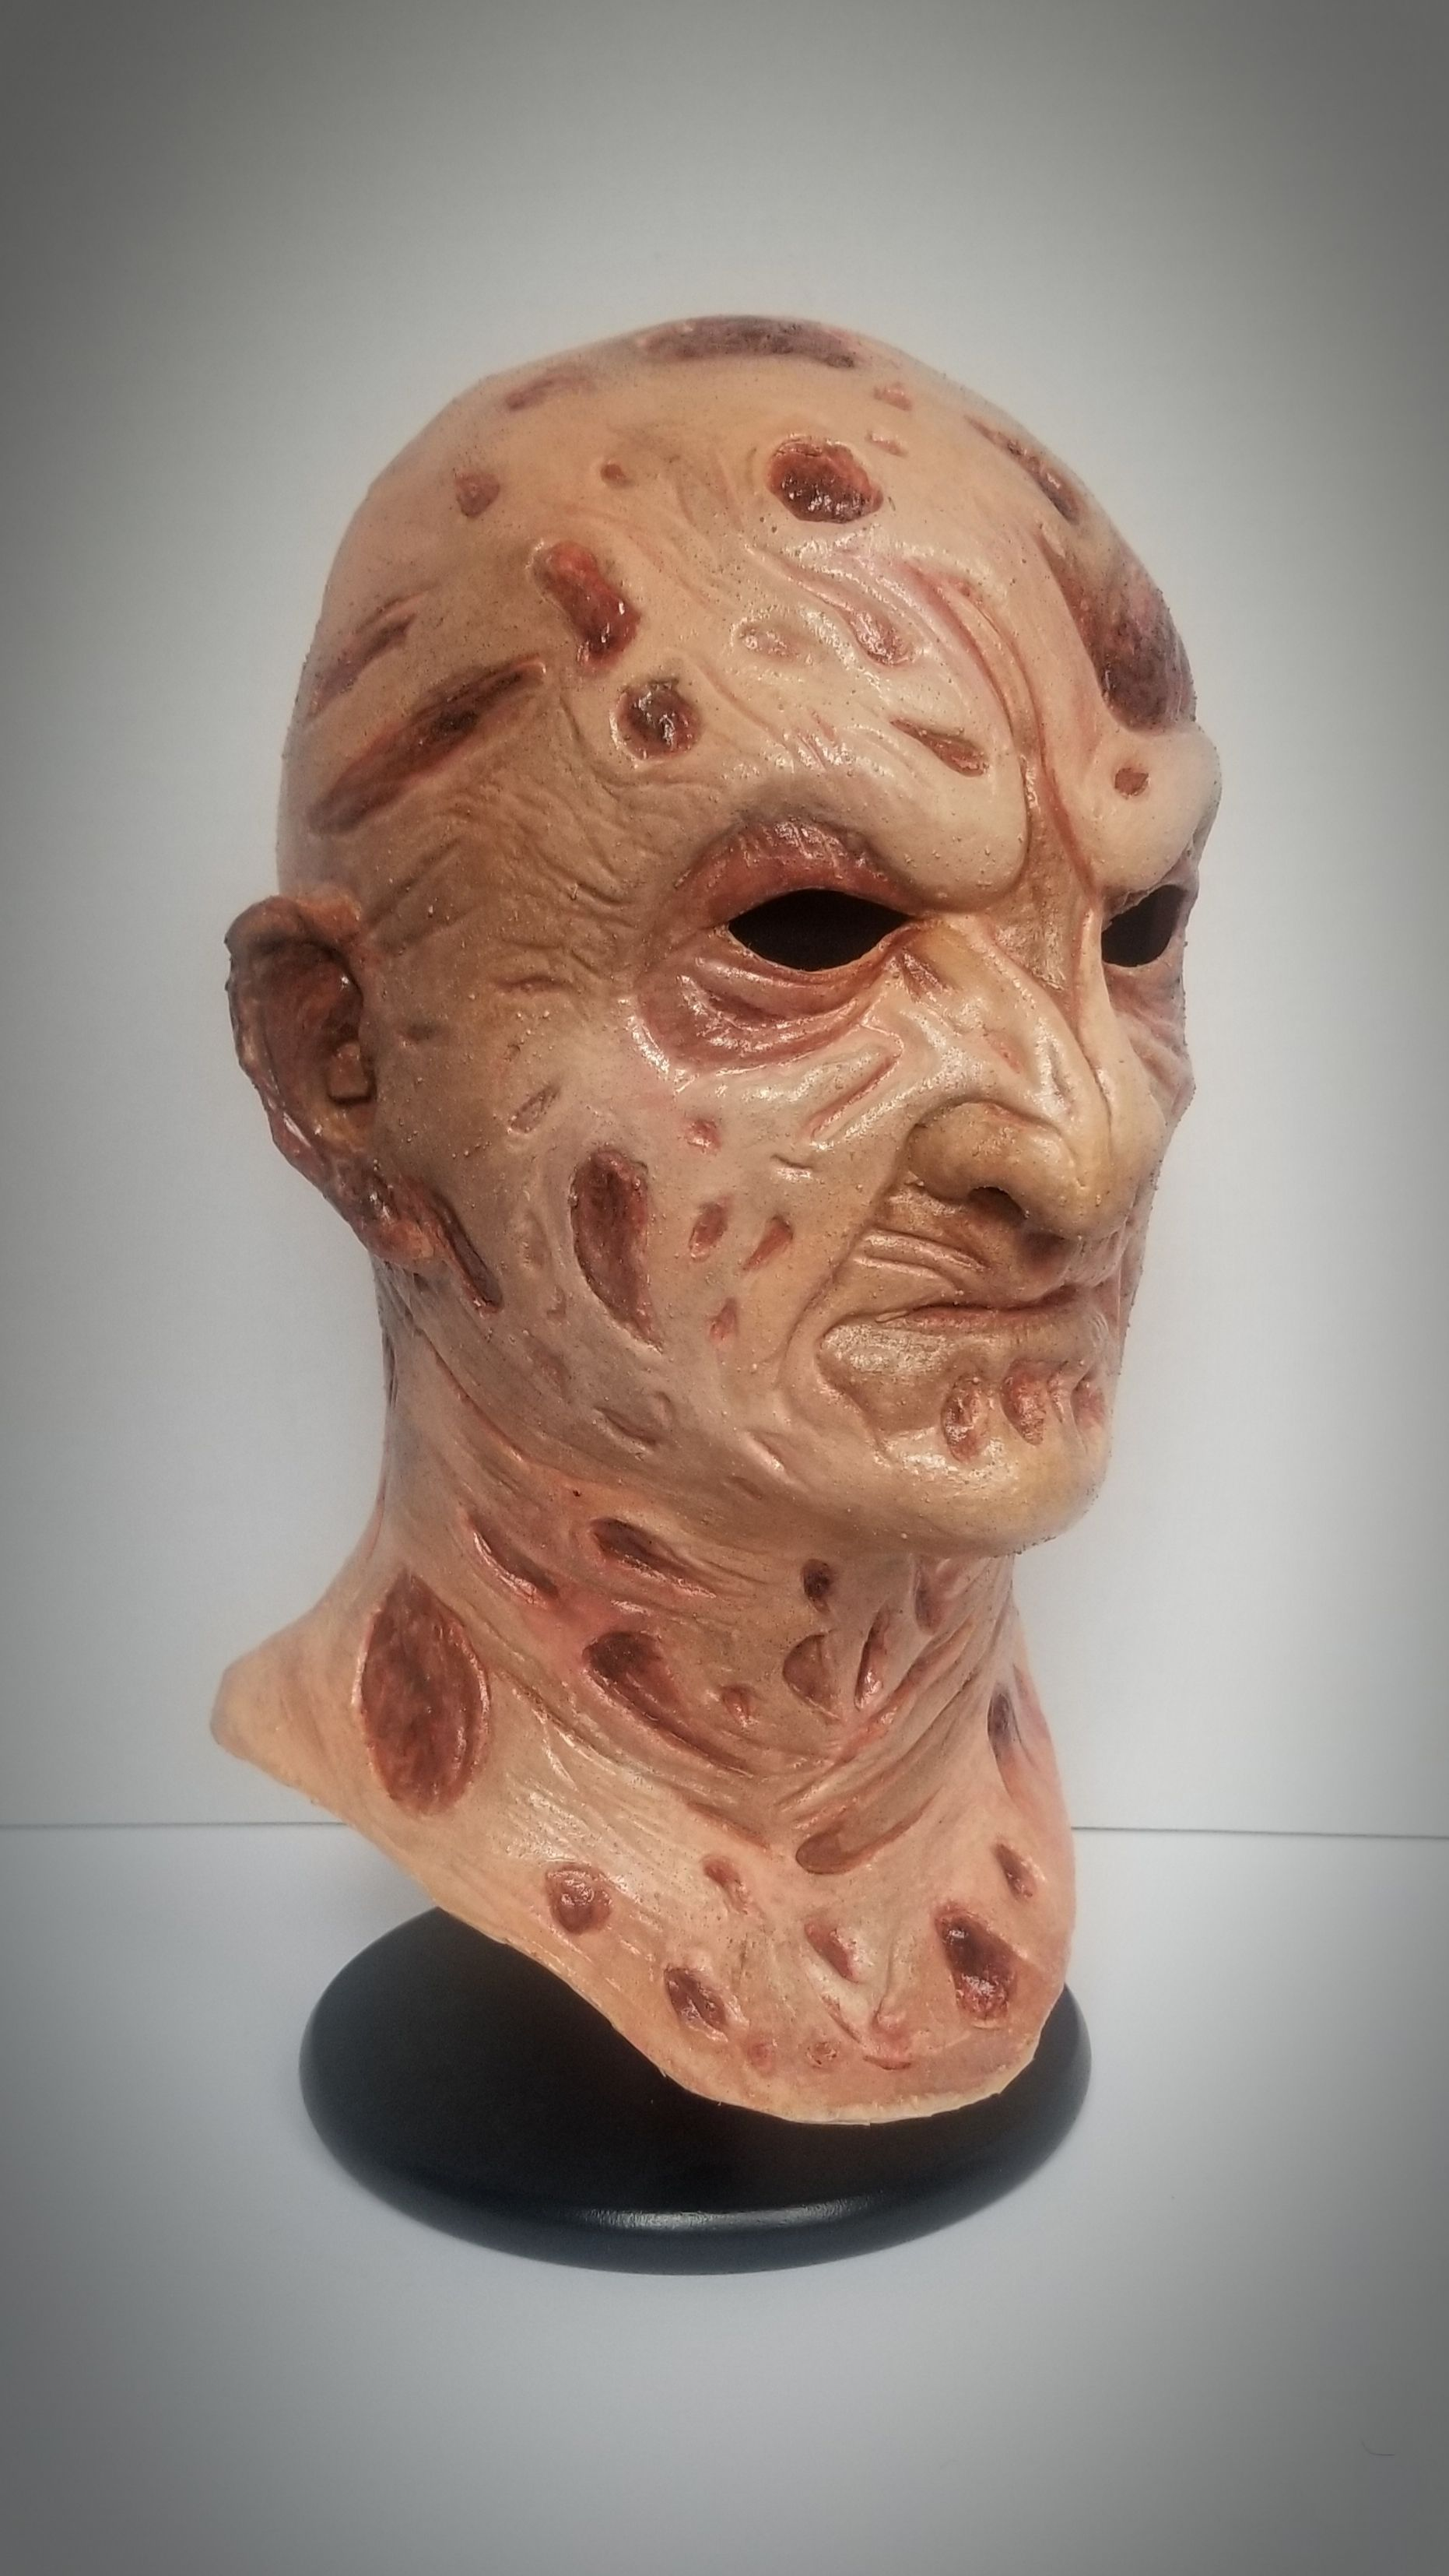 Krueger Bust (no hat) in 2020 Mask, Haul, Lion sculpture